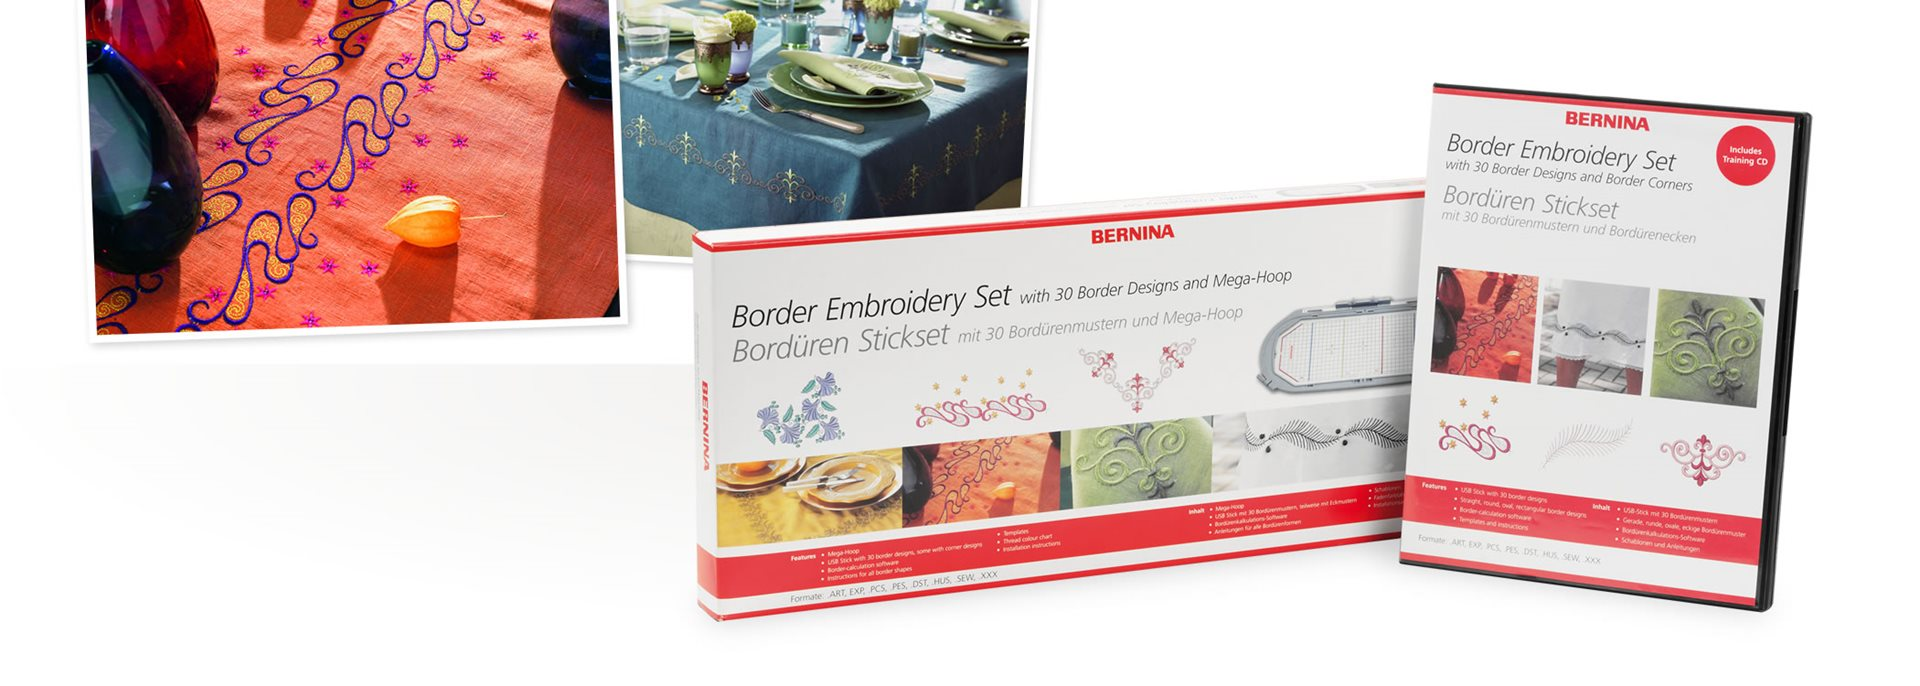 Picture: Border Embroidery Set